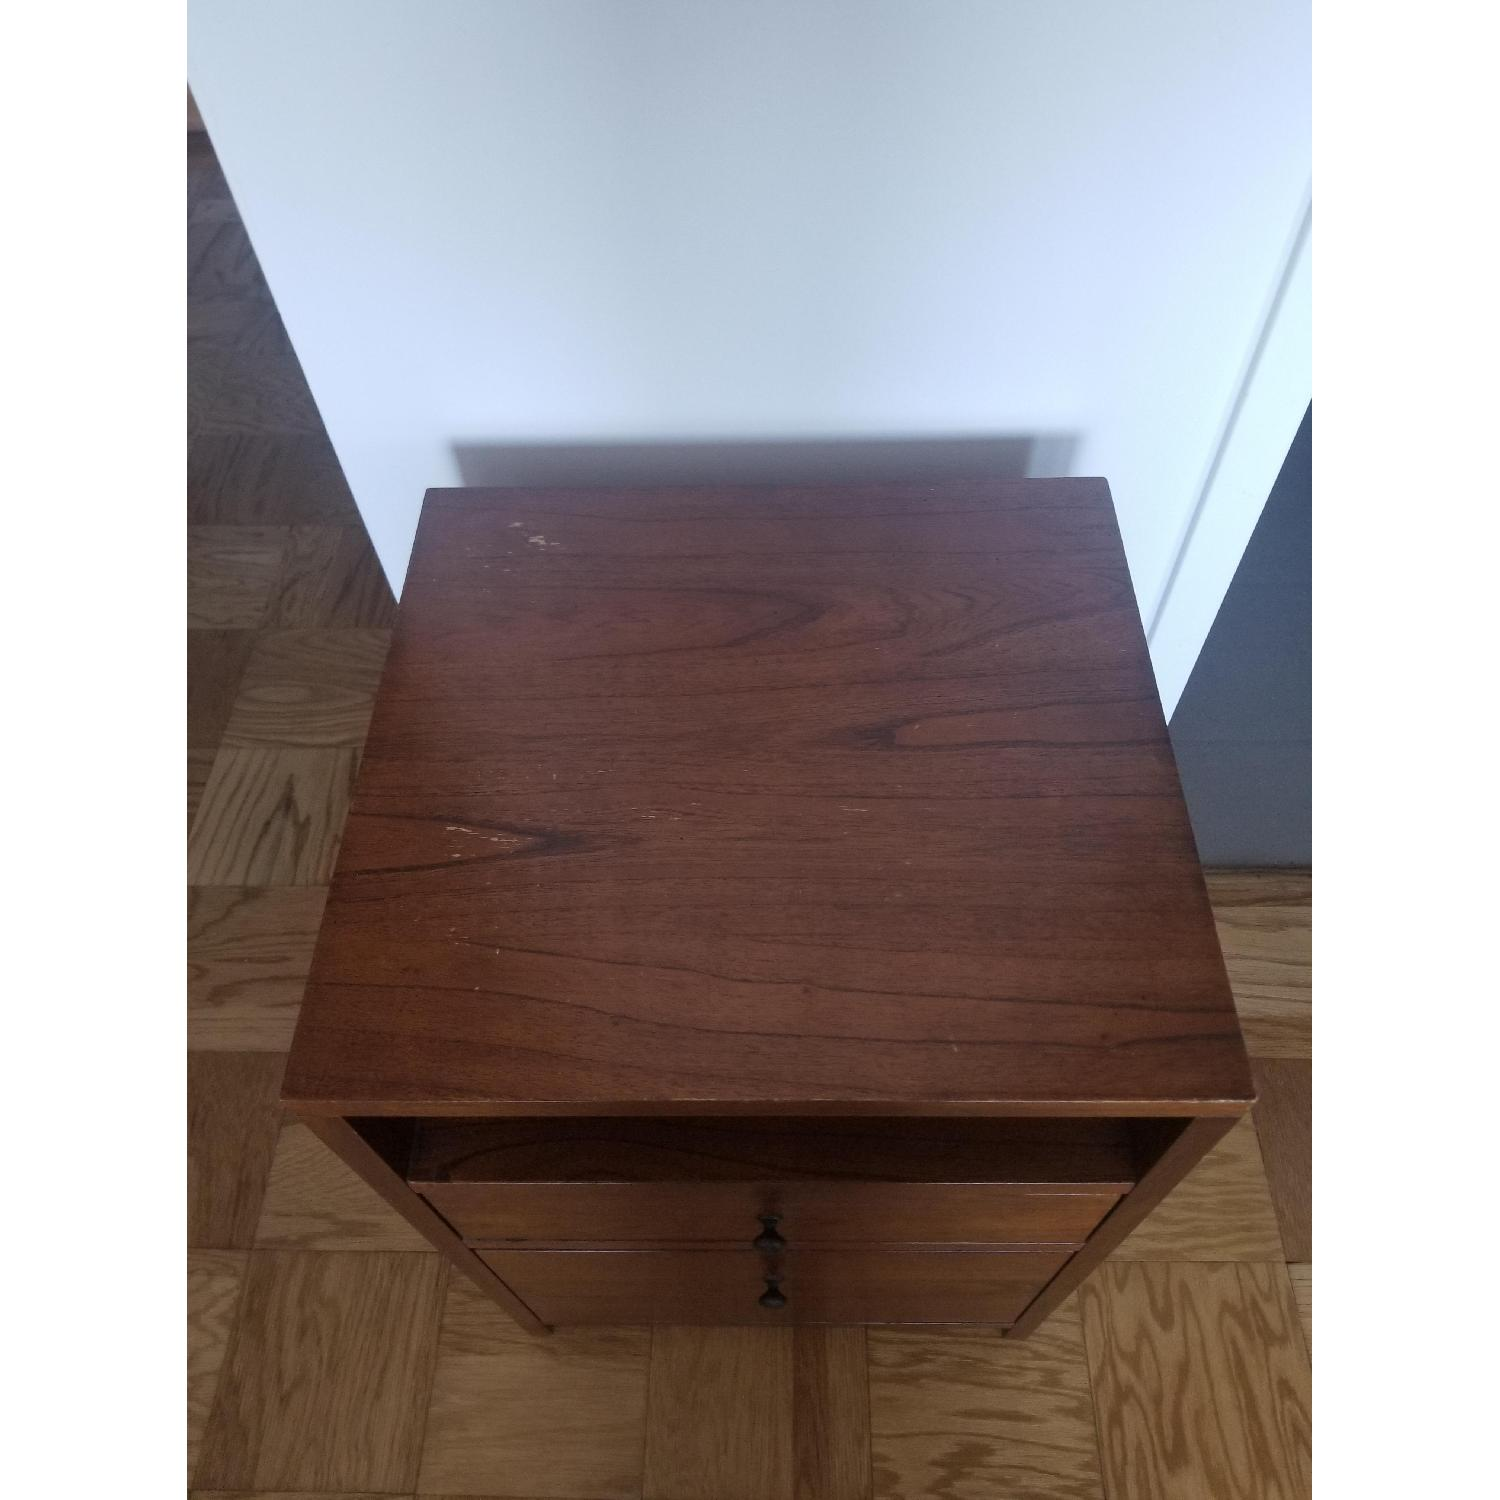 Pottery Barn Wood Filing Cabinet and Bedside Stand - image-2